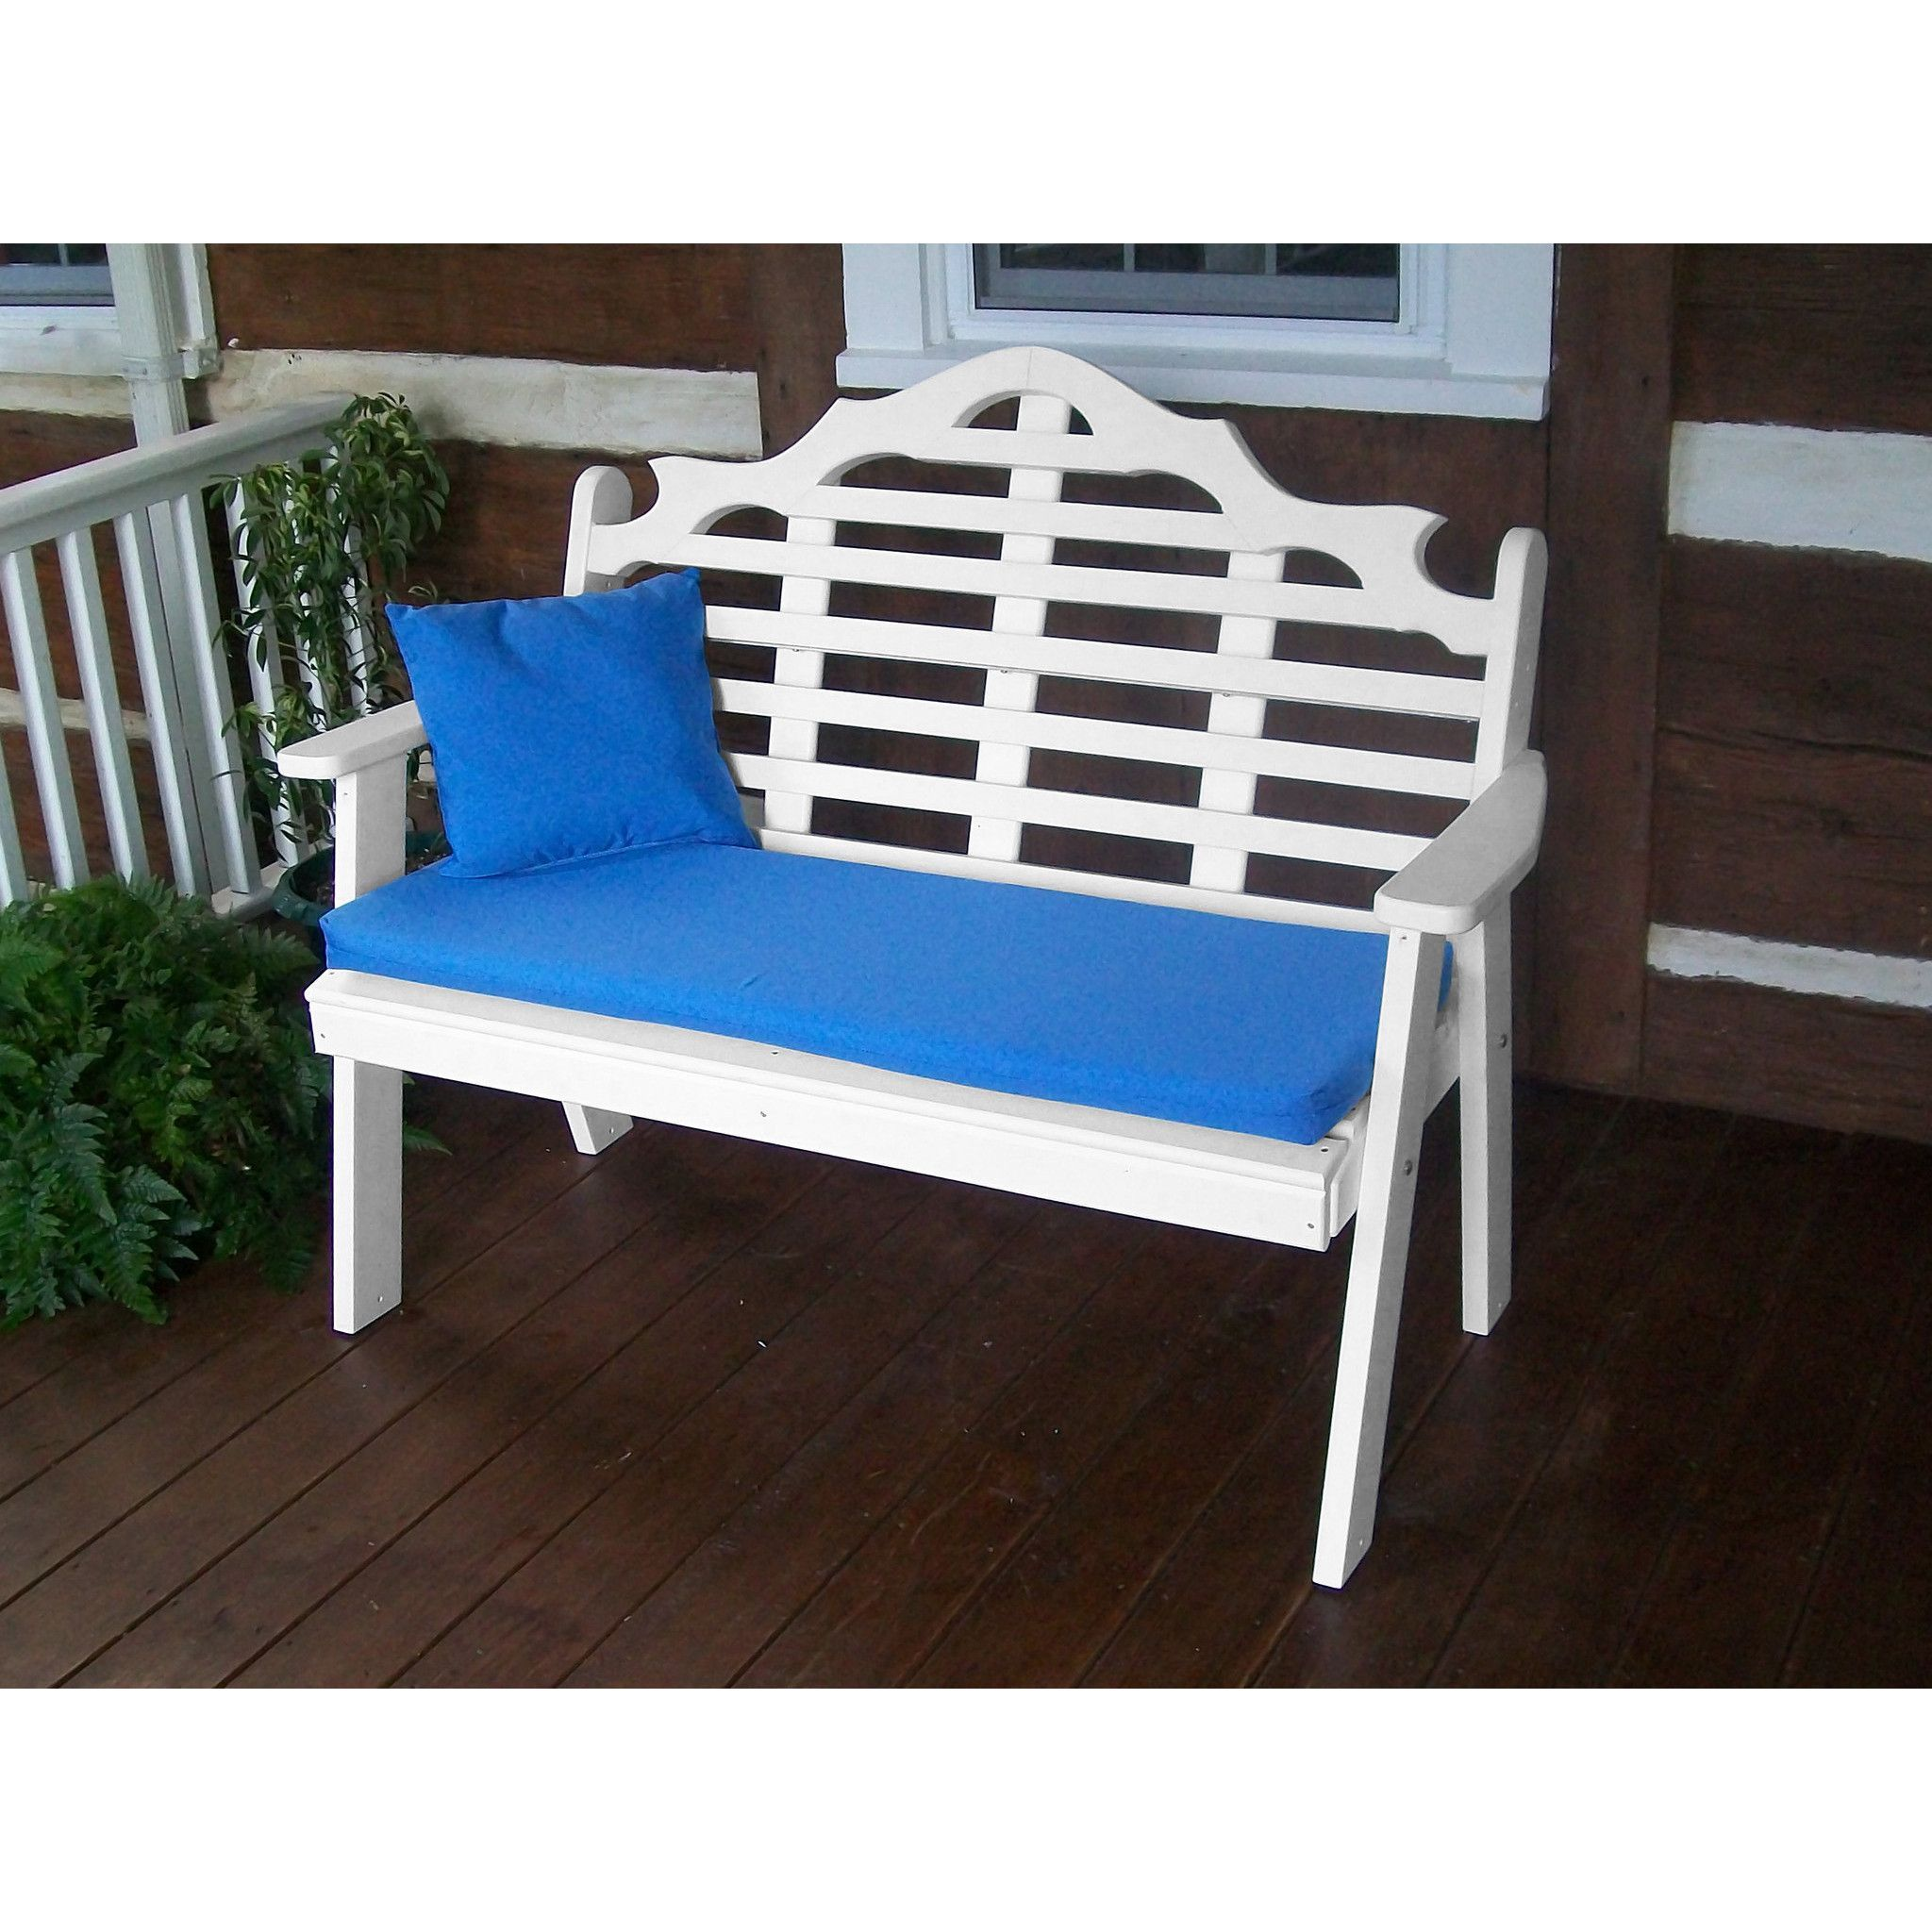 A L Furniture Company Recycled Plastic 4 Marlboro Garden Bench Lead Time To Ship 3 Weeks Plastic Garden Bench Outdoor Glider Chair Teak Garden Bench